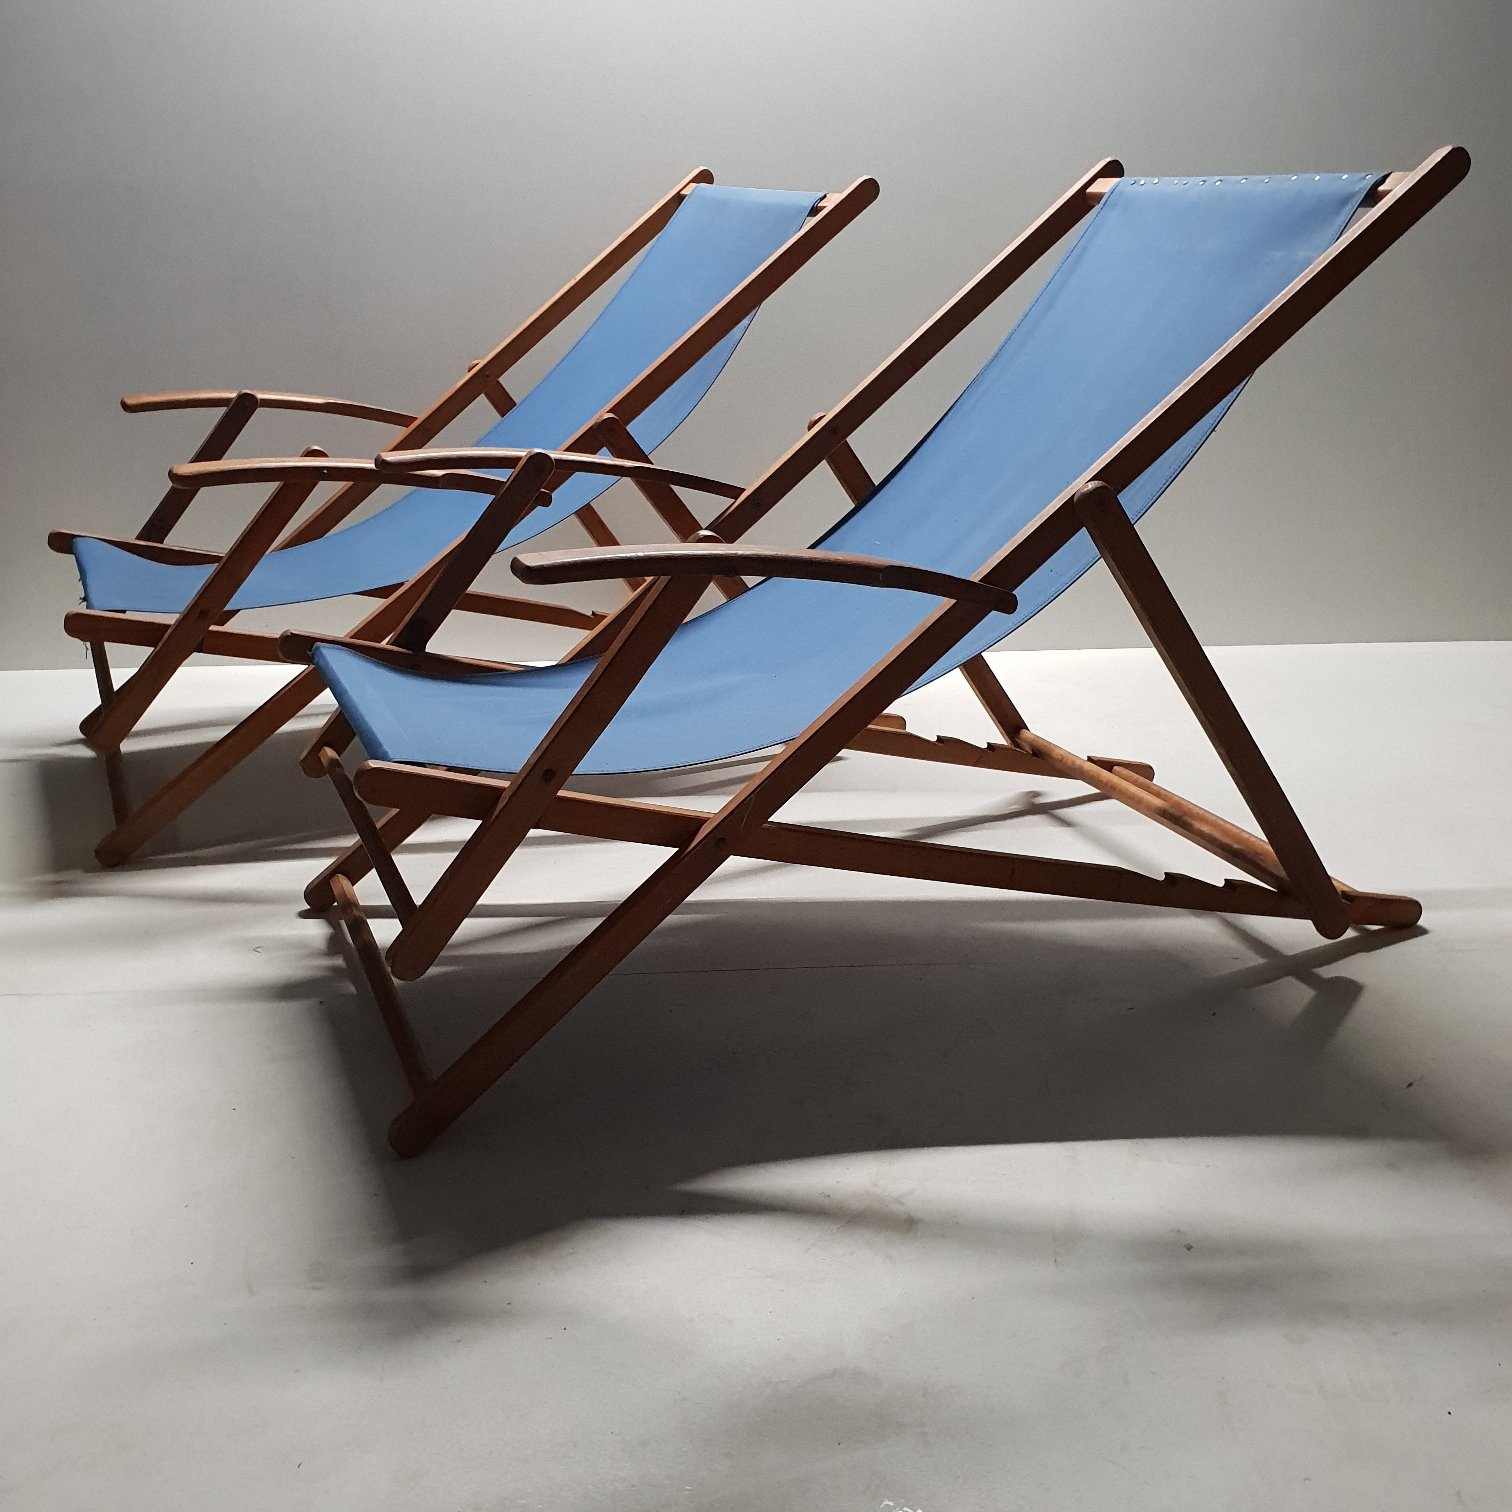 Amazing Pair Wooden Folding Beach Chairs With Canvas Upholstery 92436 Beatyapartments Chair Design Images Beatyapartmentscom